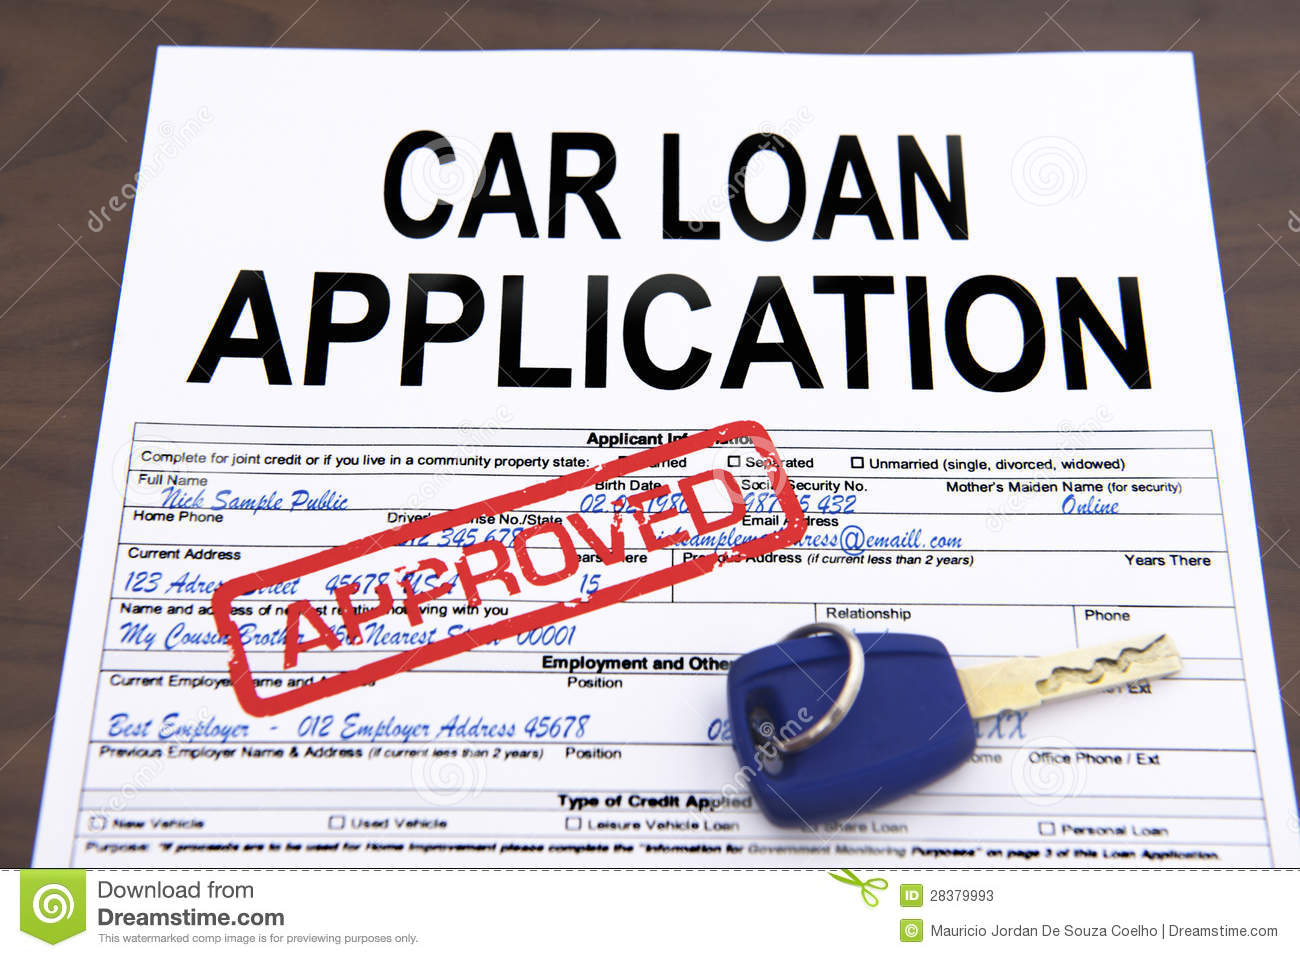 approved car loan application form 28379993